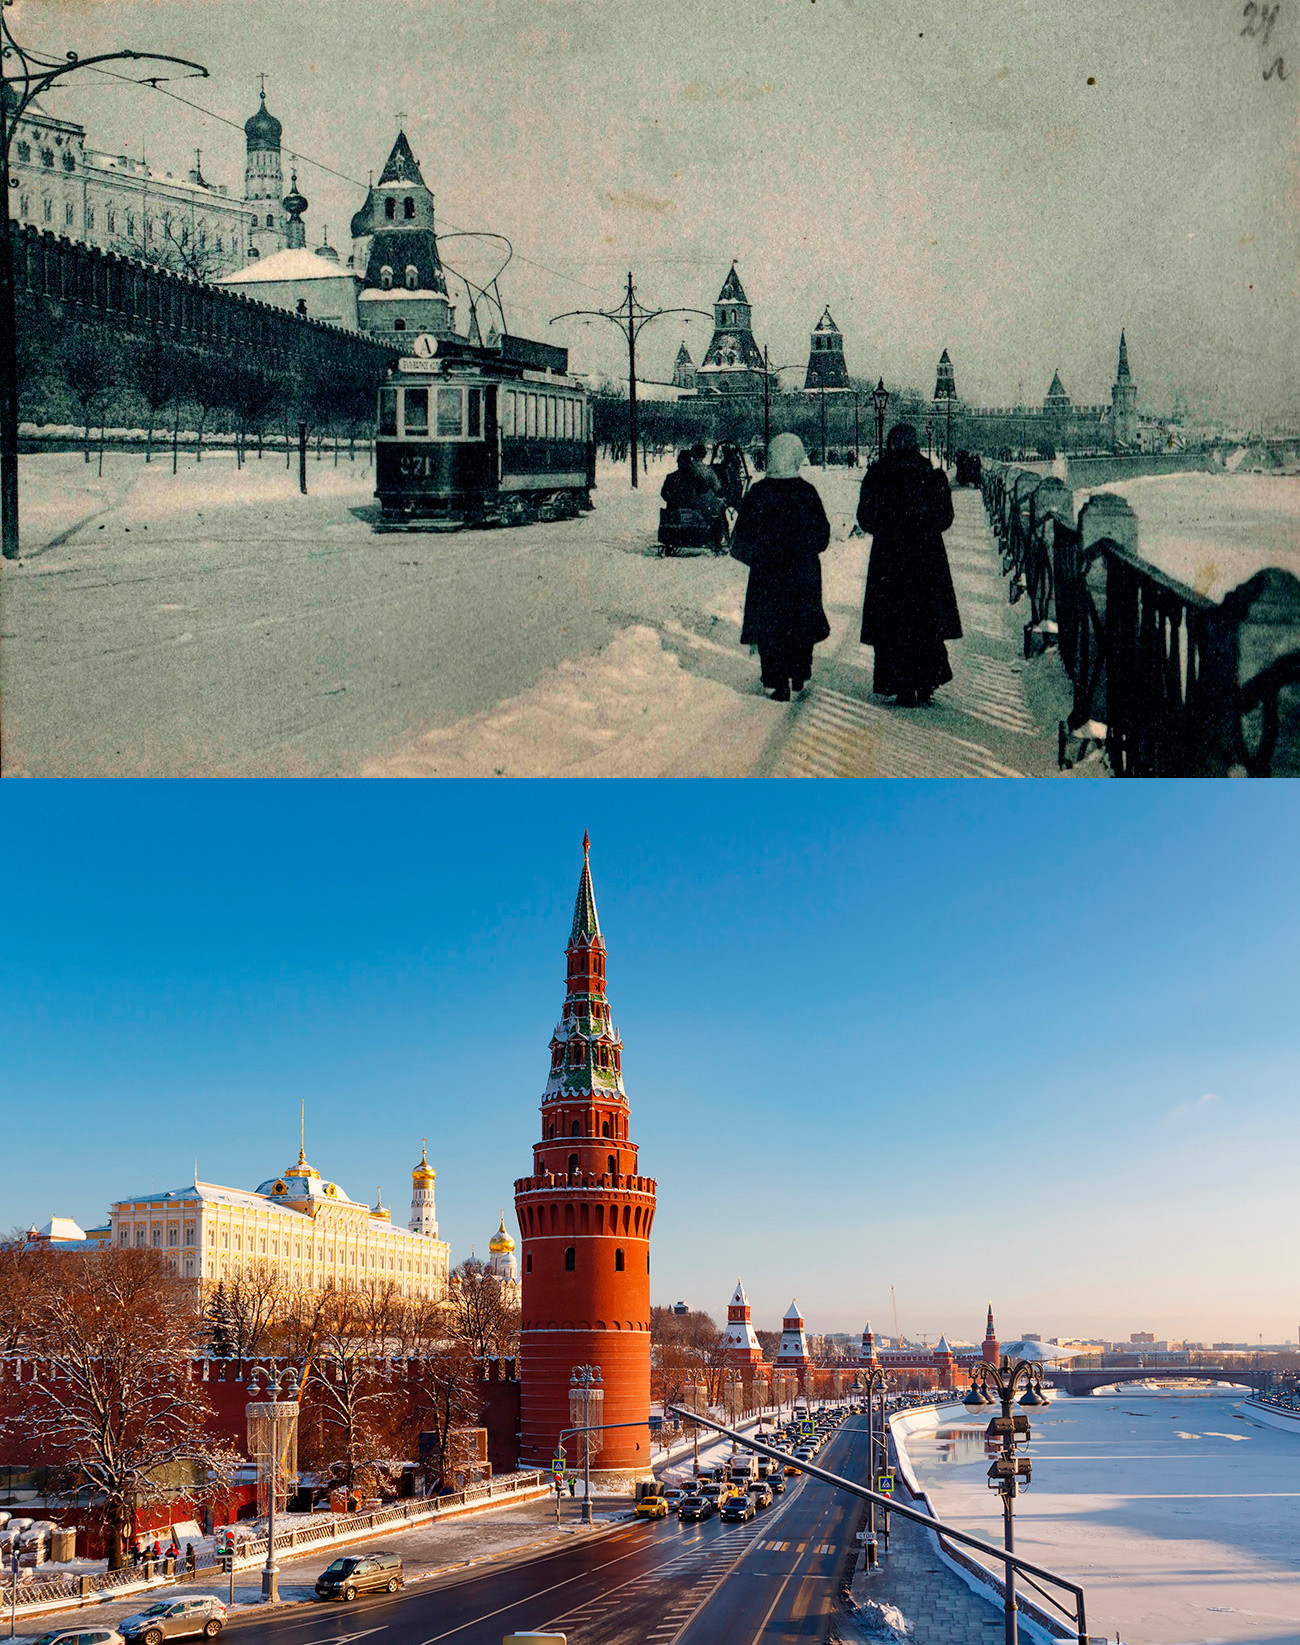 Kremlin Embankment